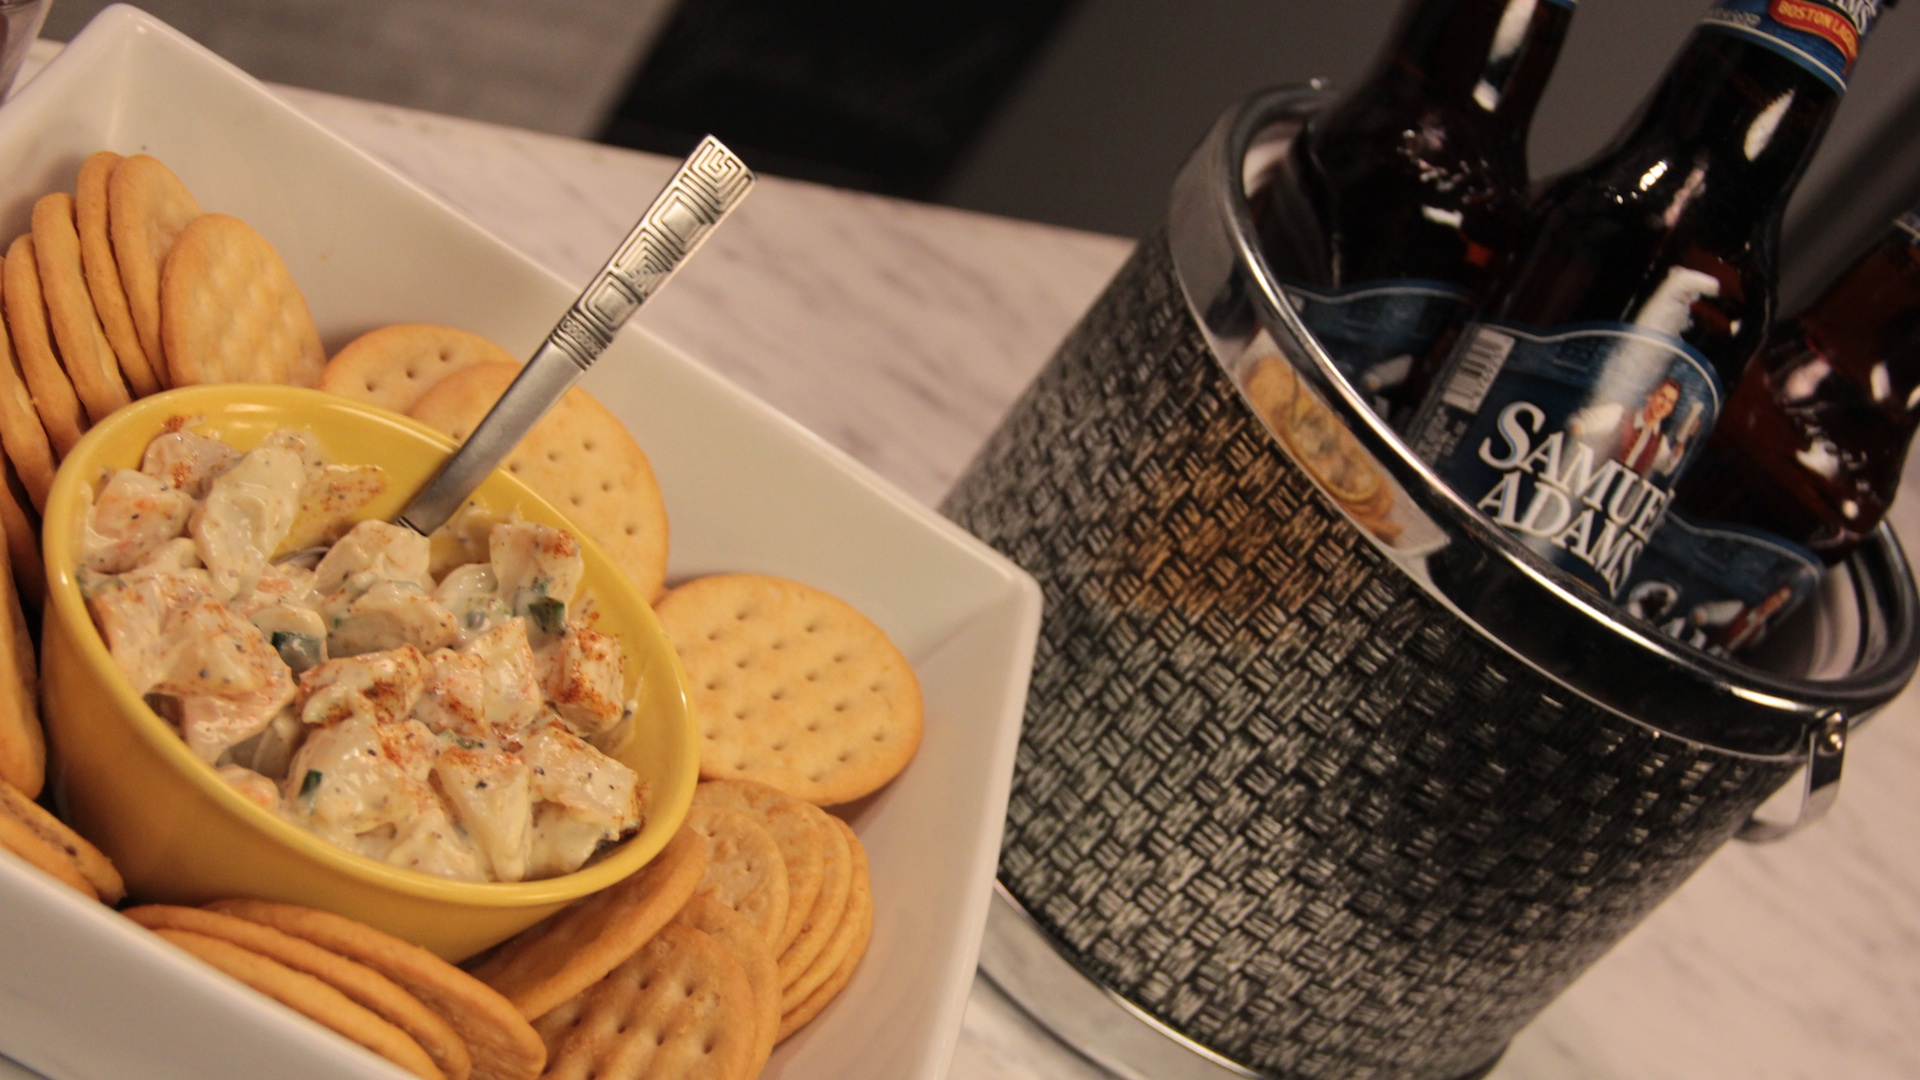 How to Make Lobster Spread For Your Patriots Super Bowl Party